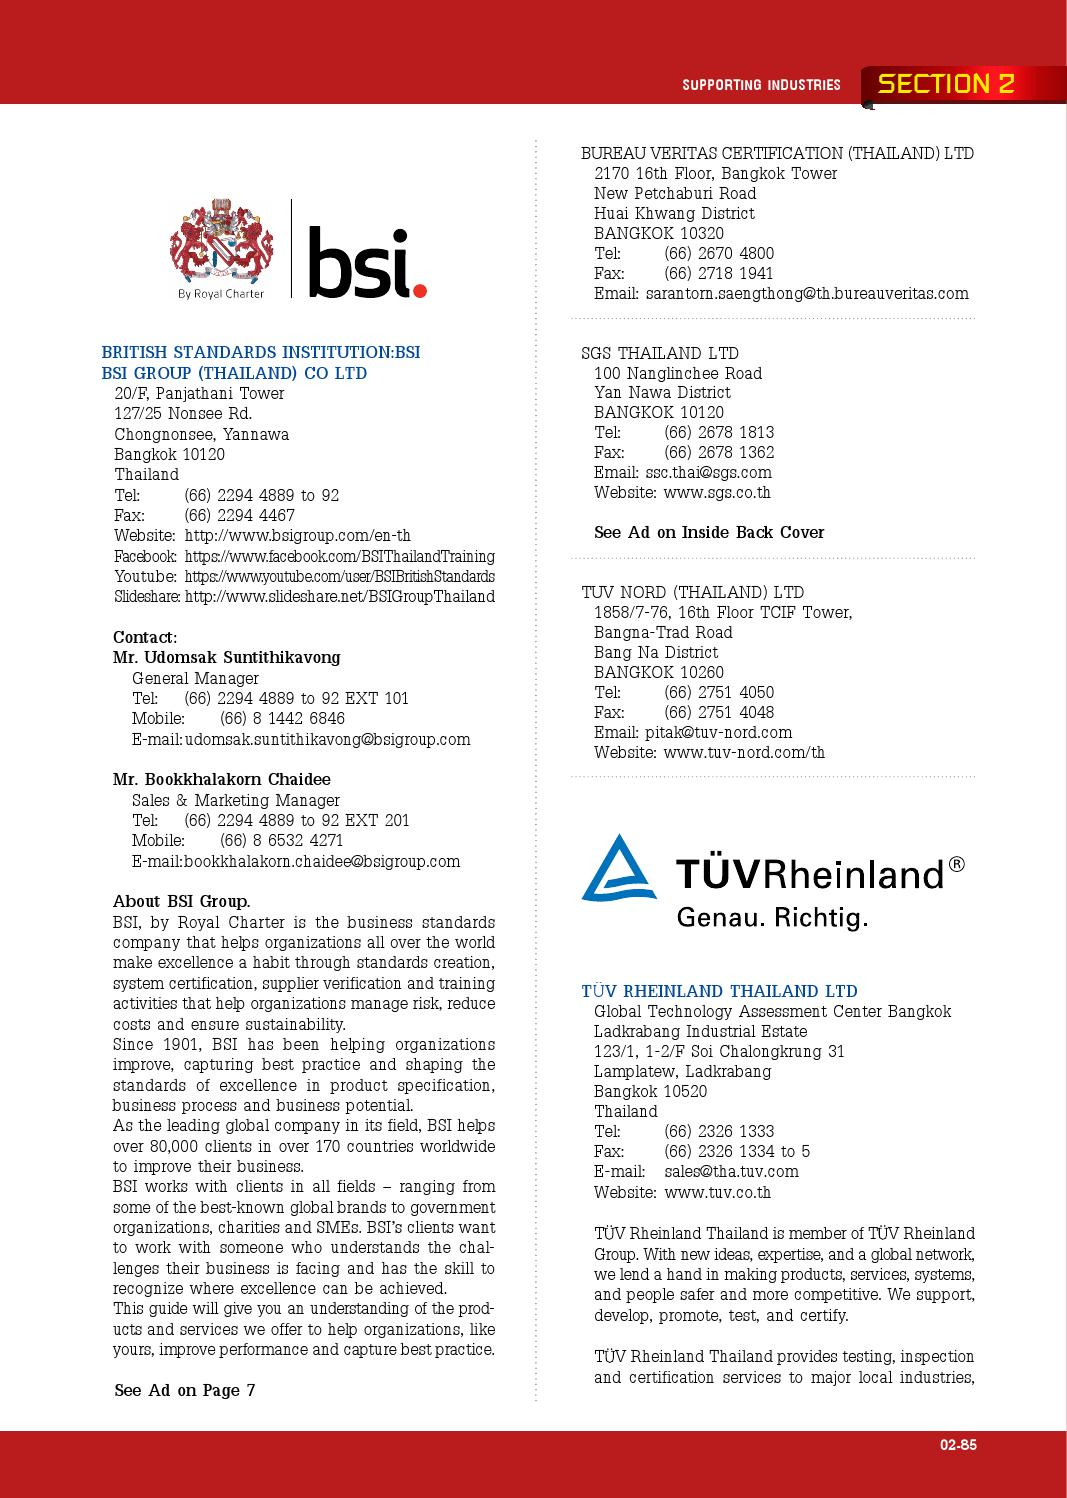 Directory of Thailand Auto Parts Testing and Testing Equipment